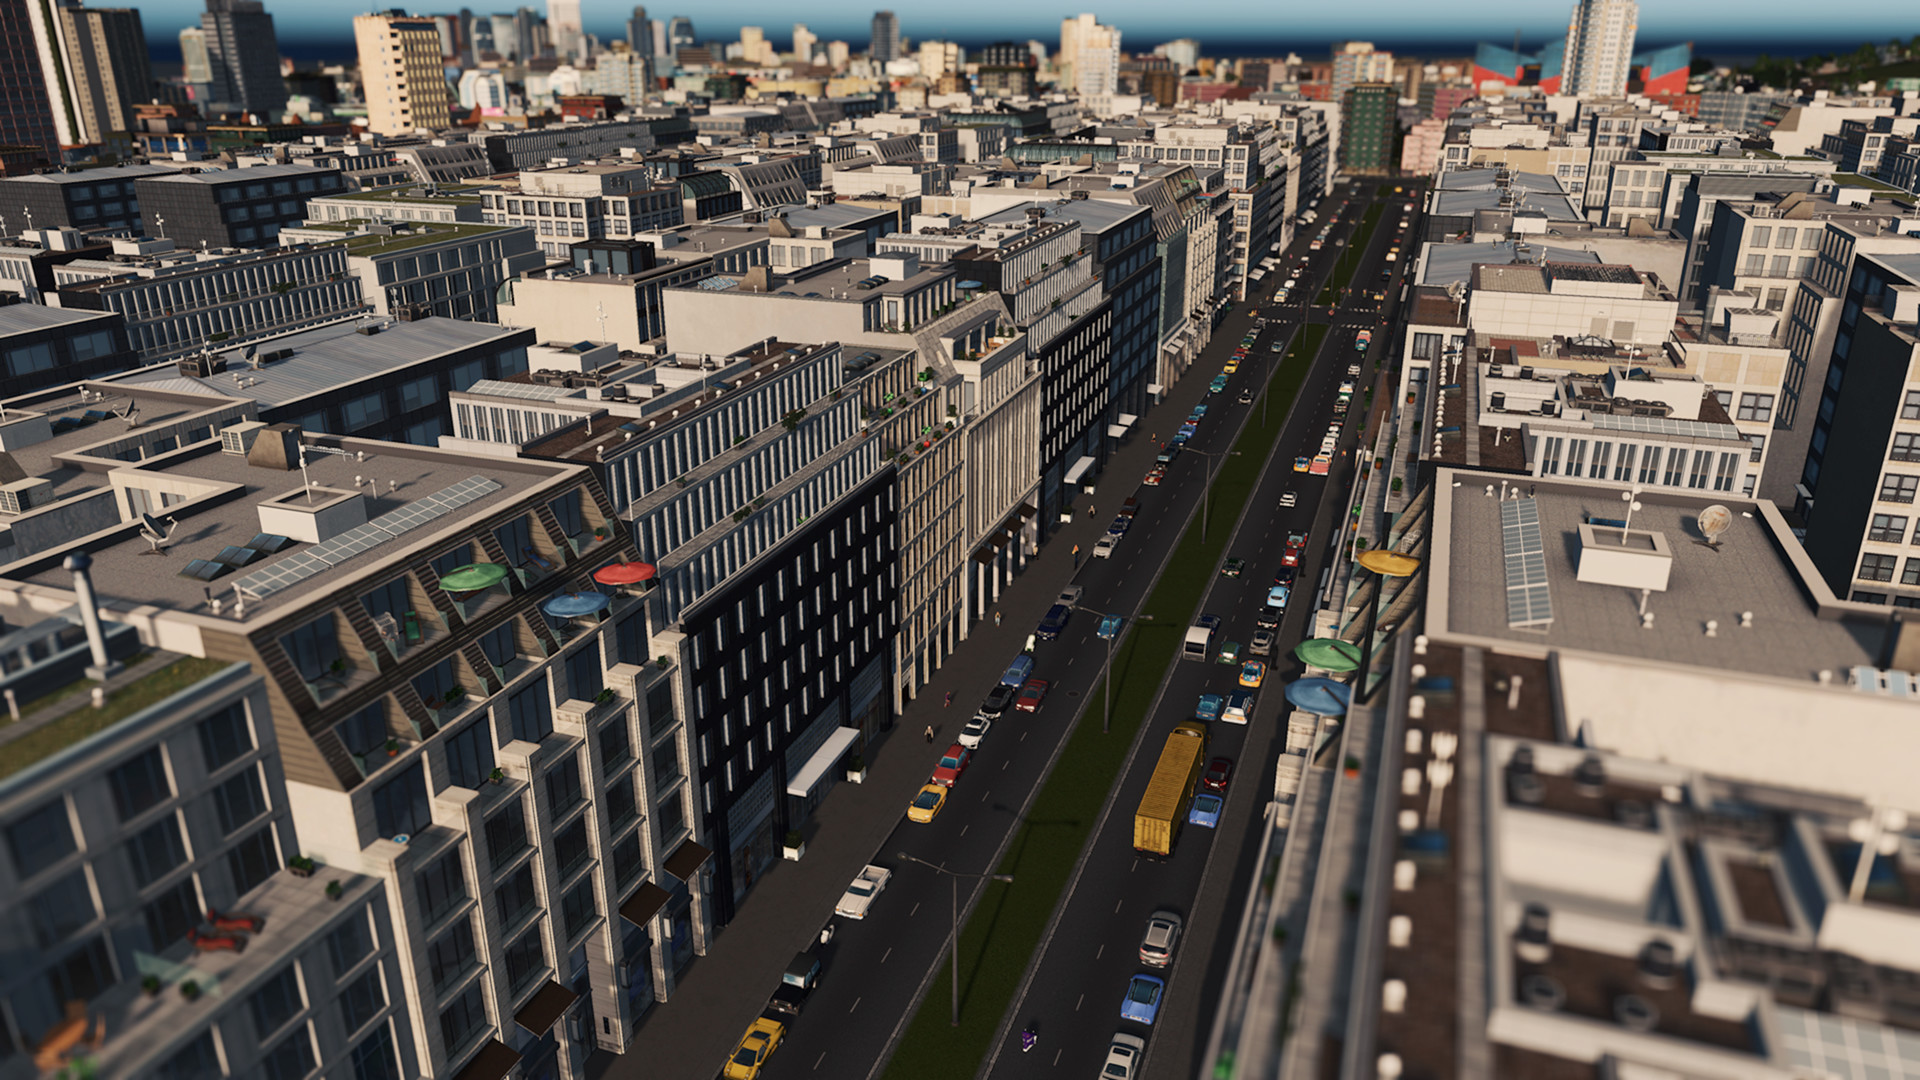 Cities: Skylines - Modern City Center Screenshot 2